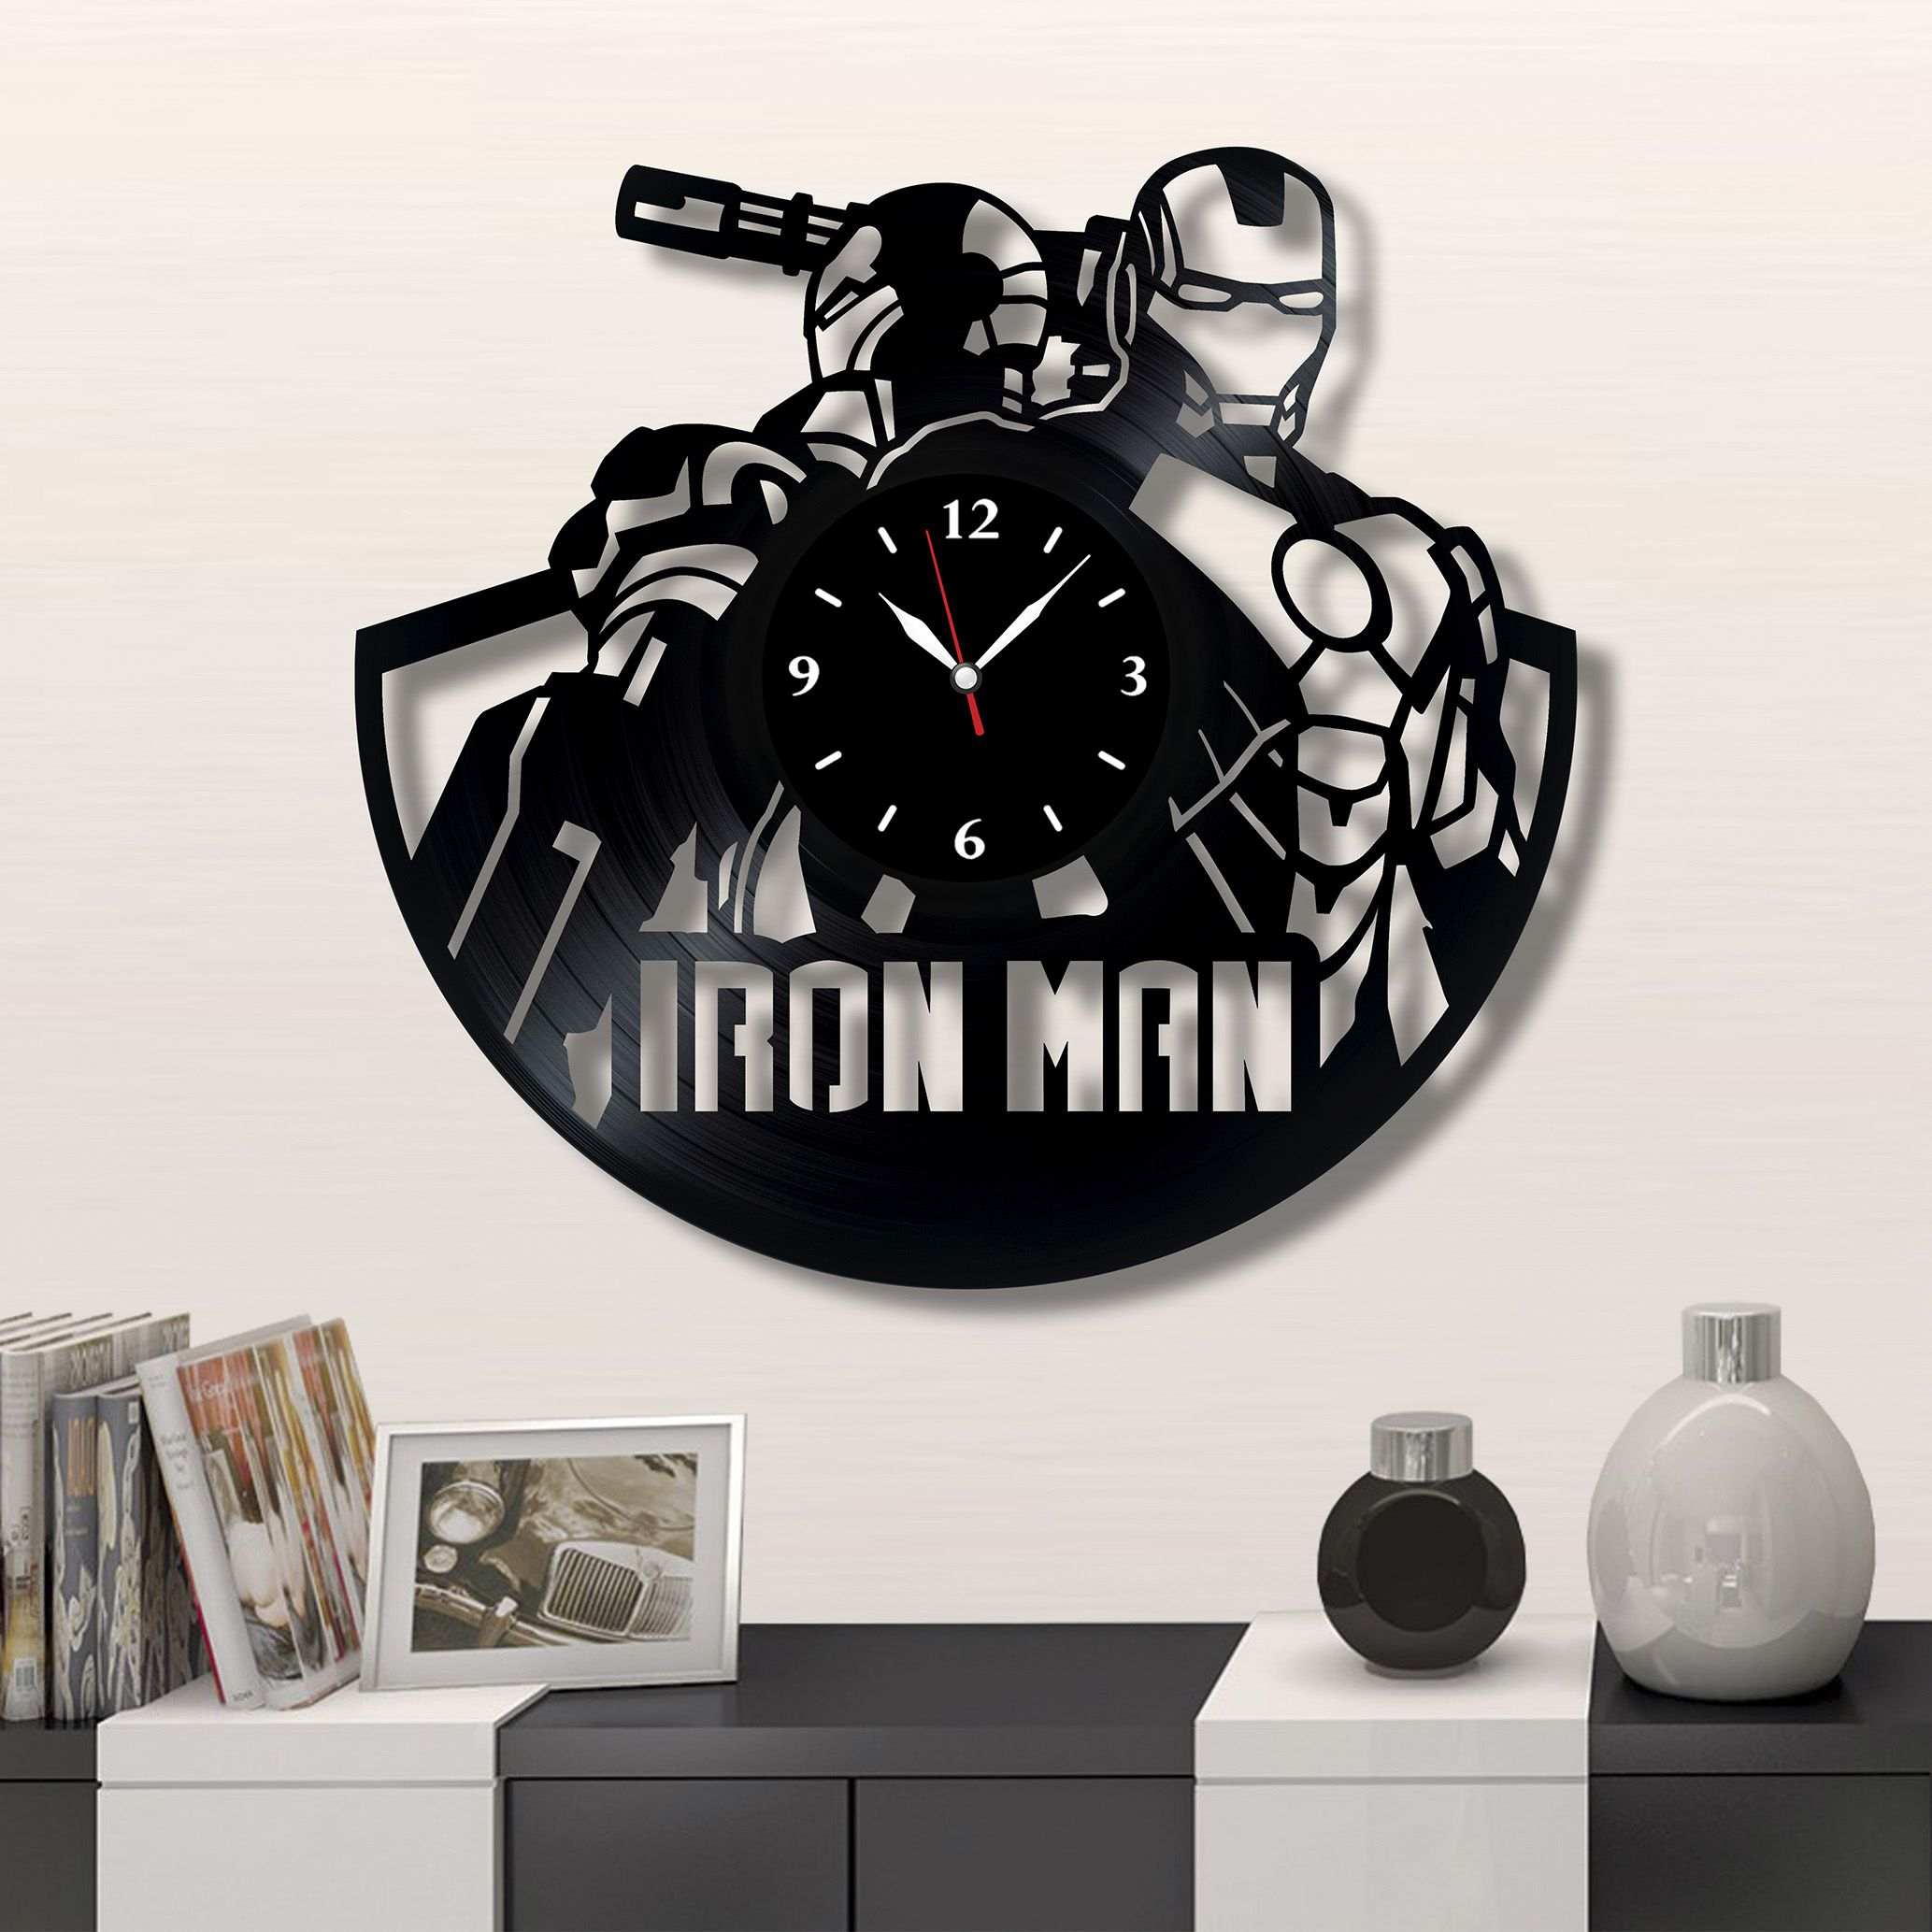 Iron Man Vinyl Record Clock, Wall Clock Avengers, Marvel Comics, Best Gift  For Home Decor